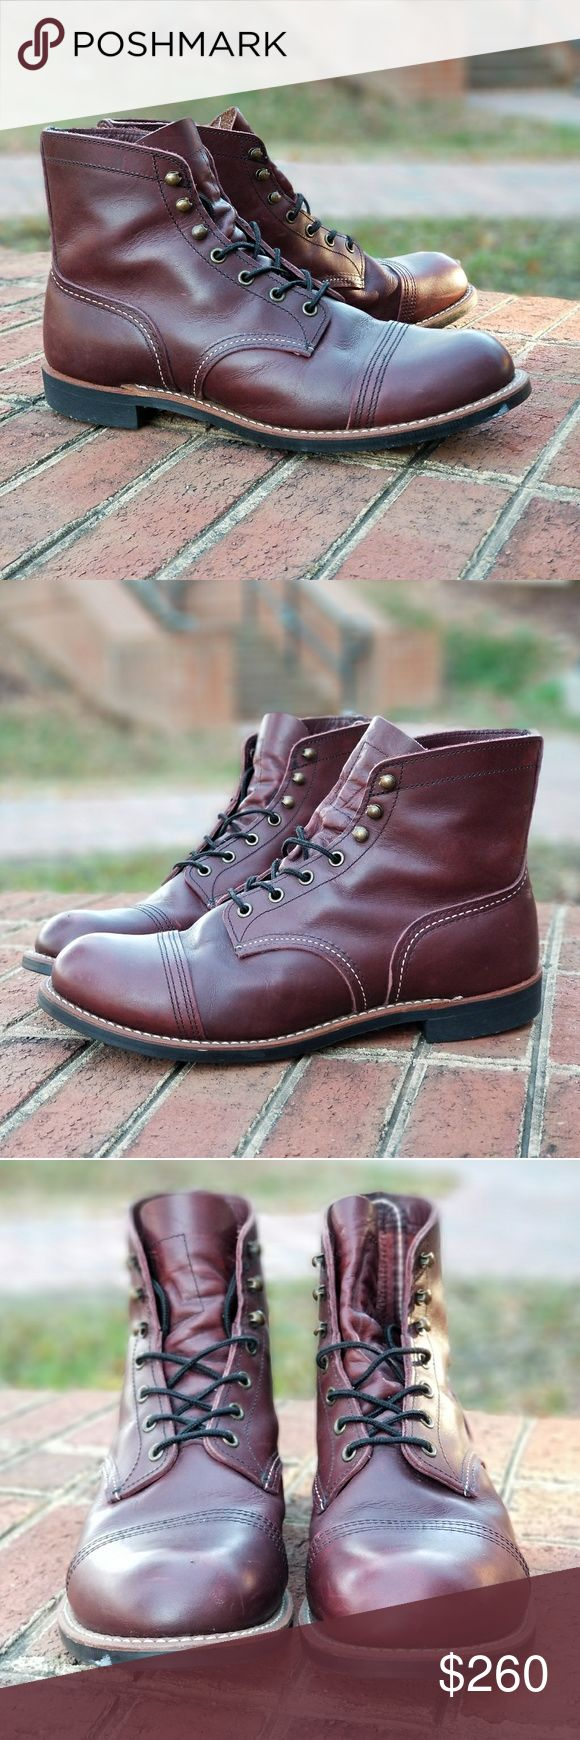 Red Wing Heritage, Iron Ranger. Style #8119 These boots have been worn less than 15 times. An amazing boot and great color but are a little to big for me. They are a 10.5 but fit like an 11.5. Made from Oxblood Mesa Leather. Red Wing Shoes Shoes Boots